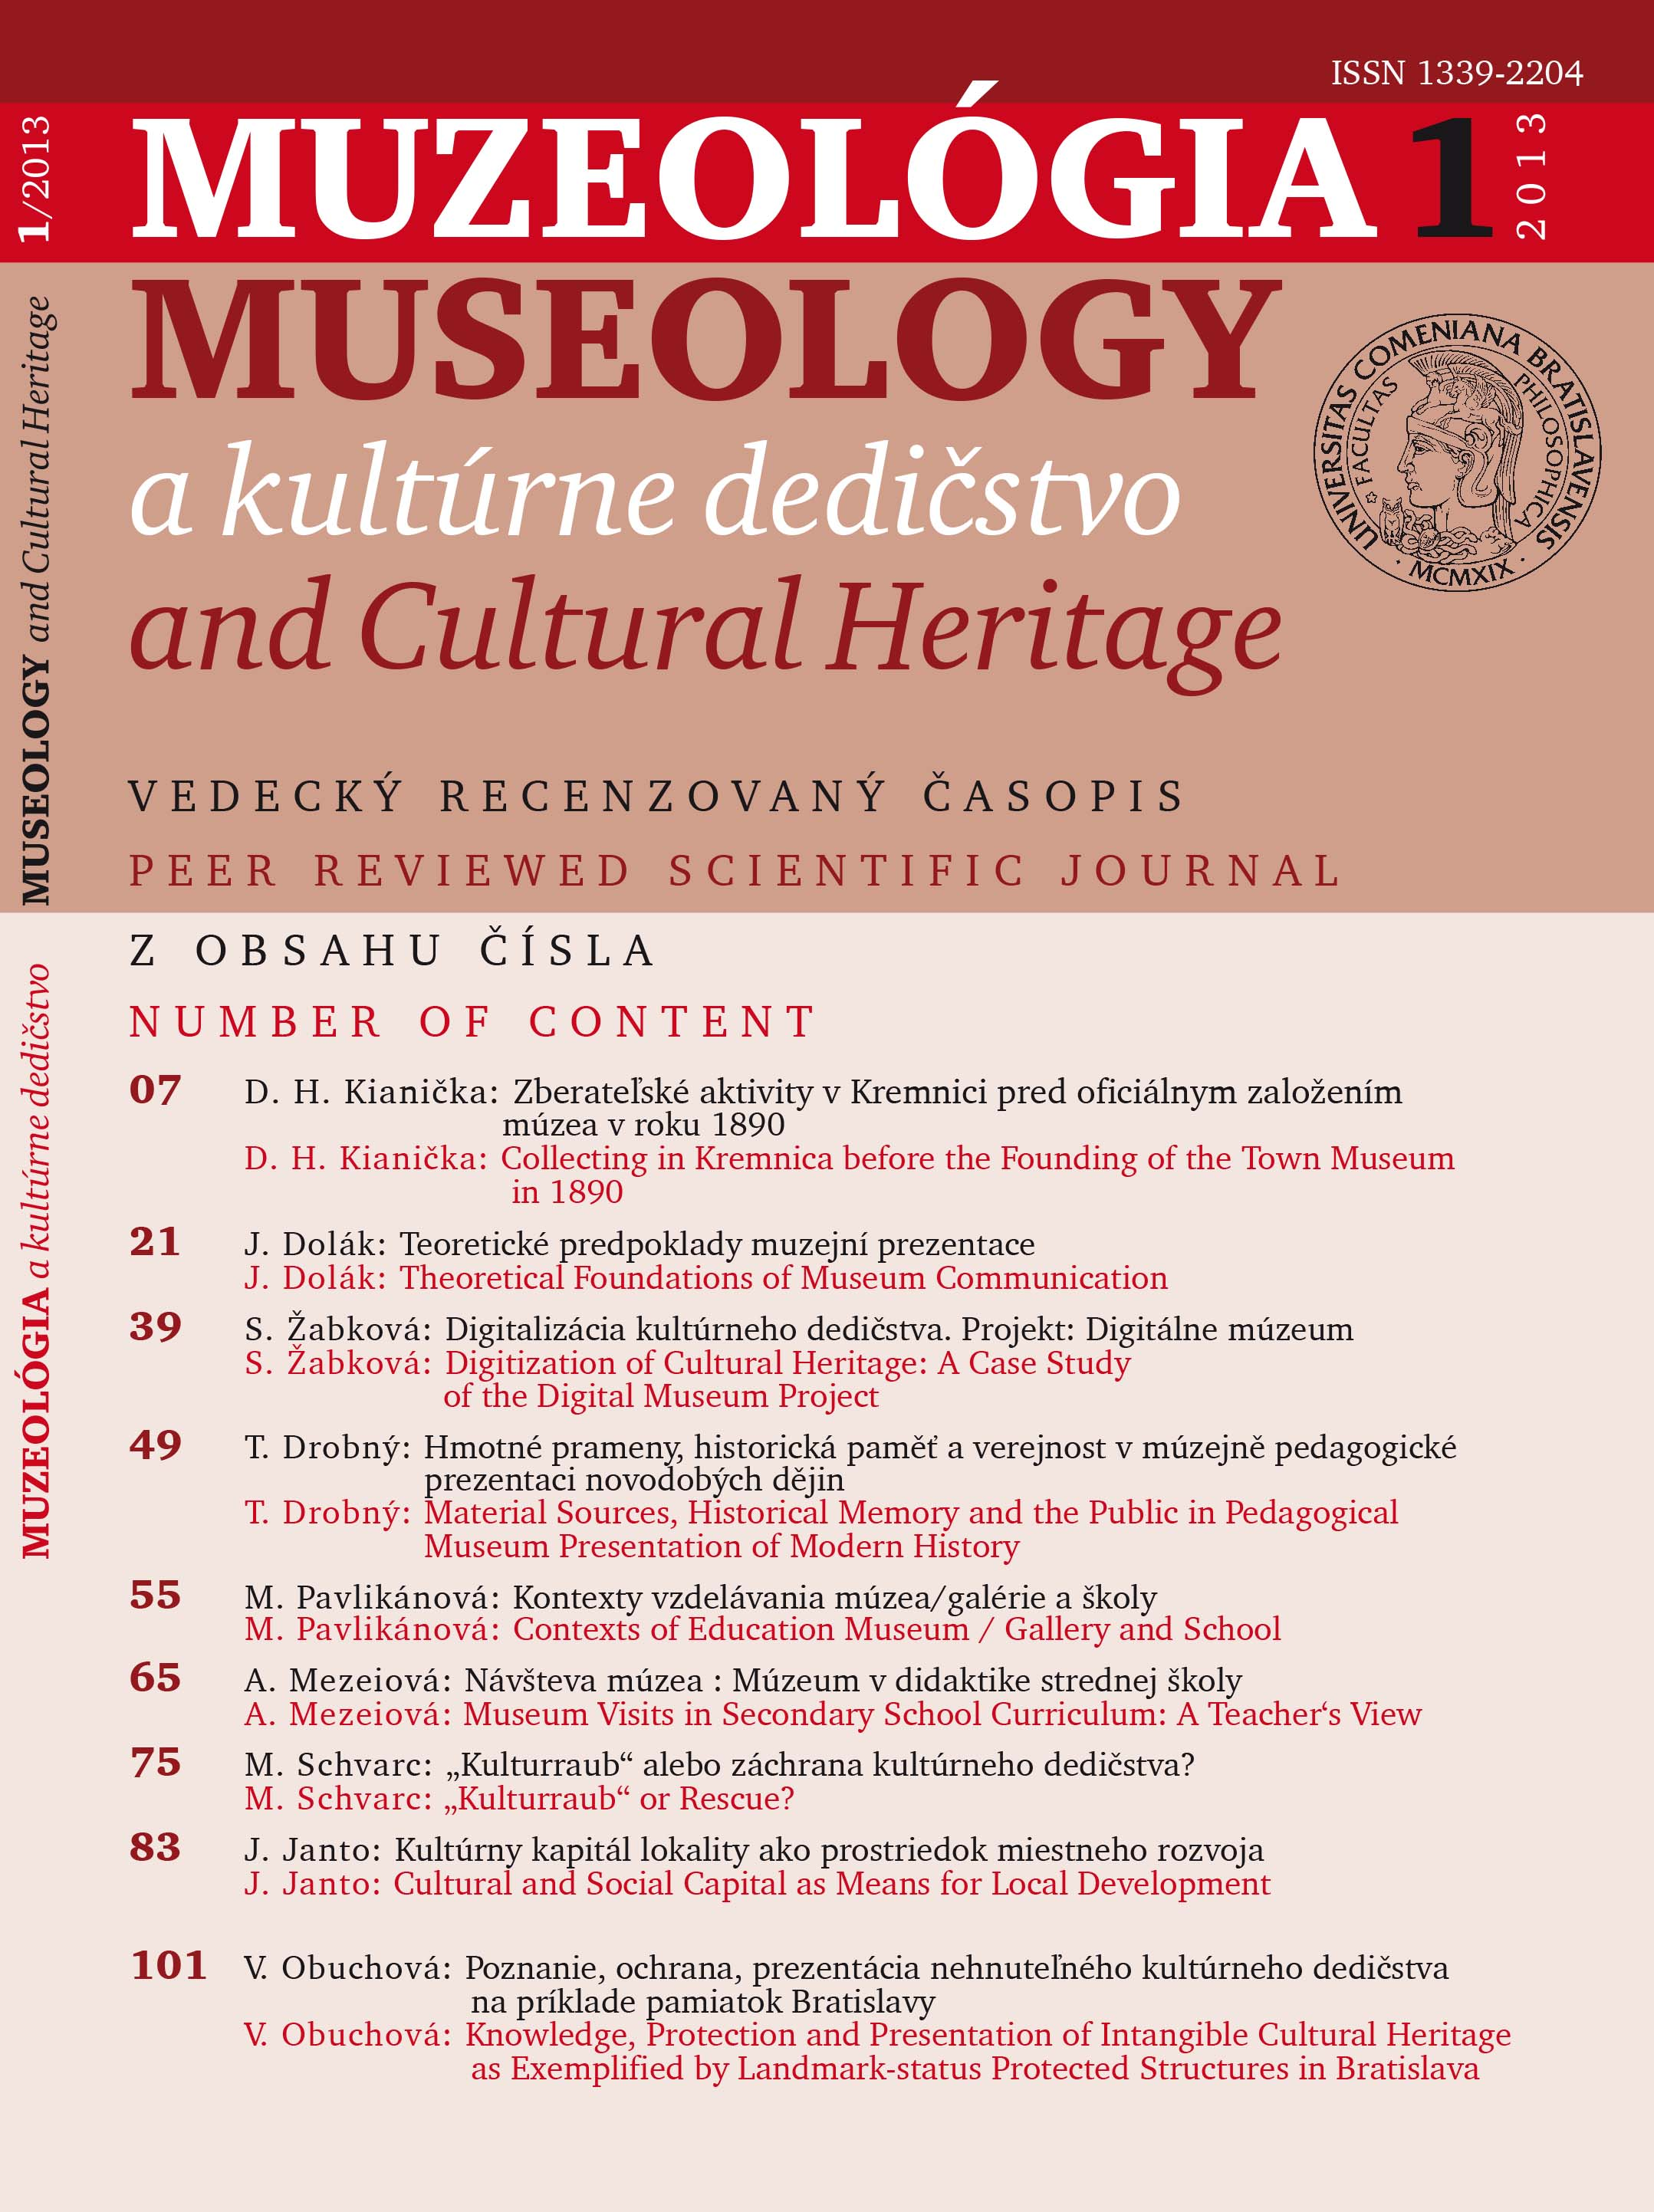 Museology and Cultural Heritage Cover Image